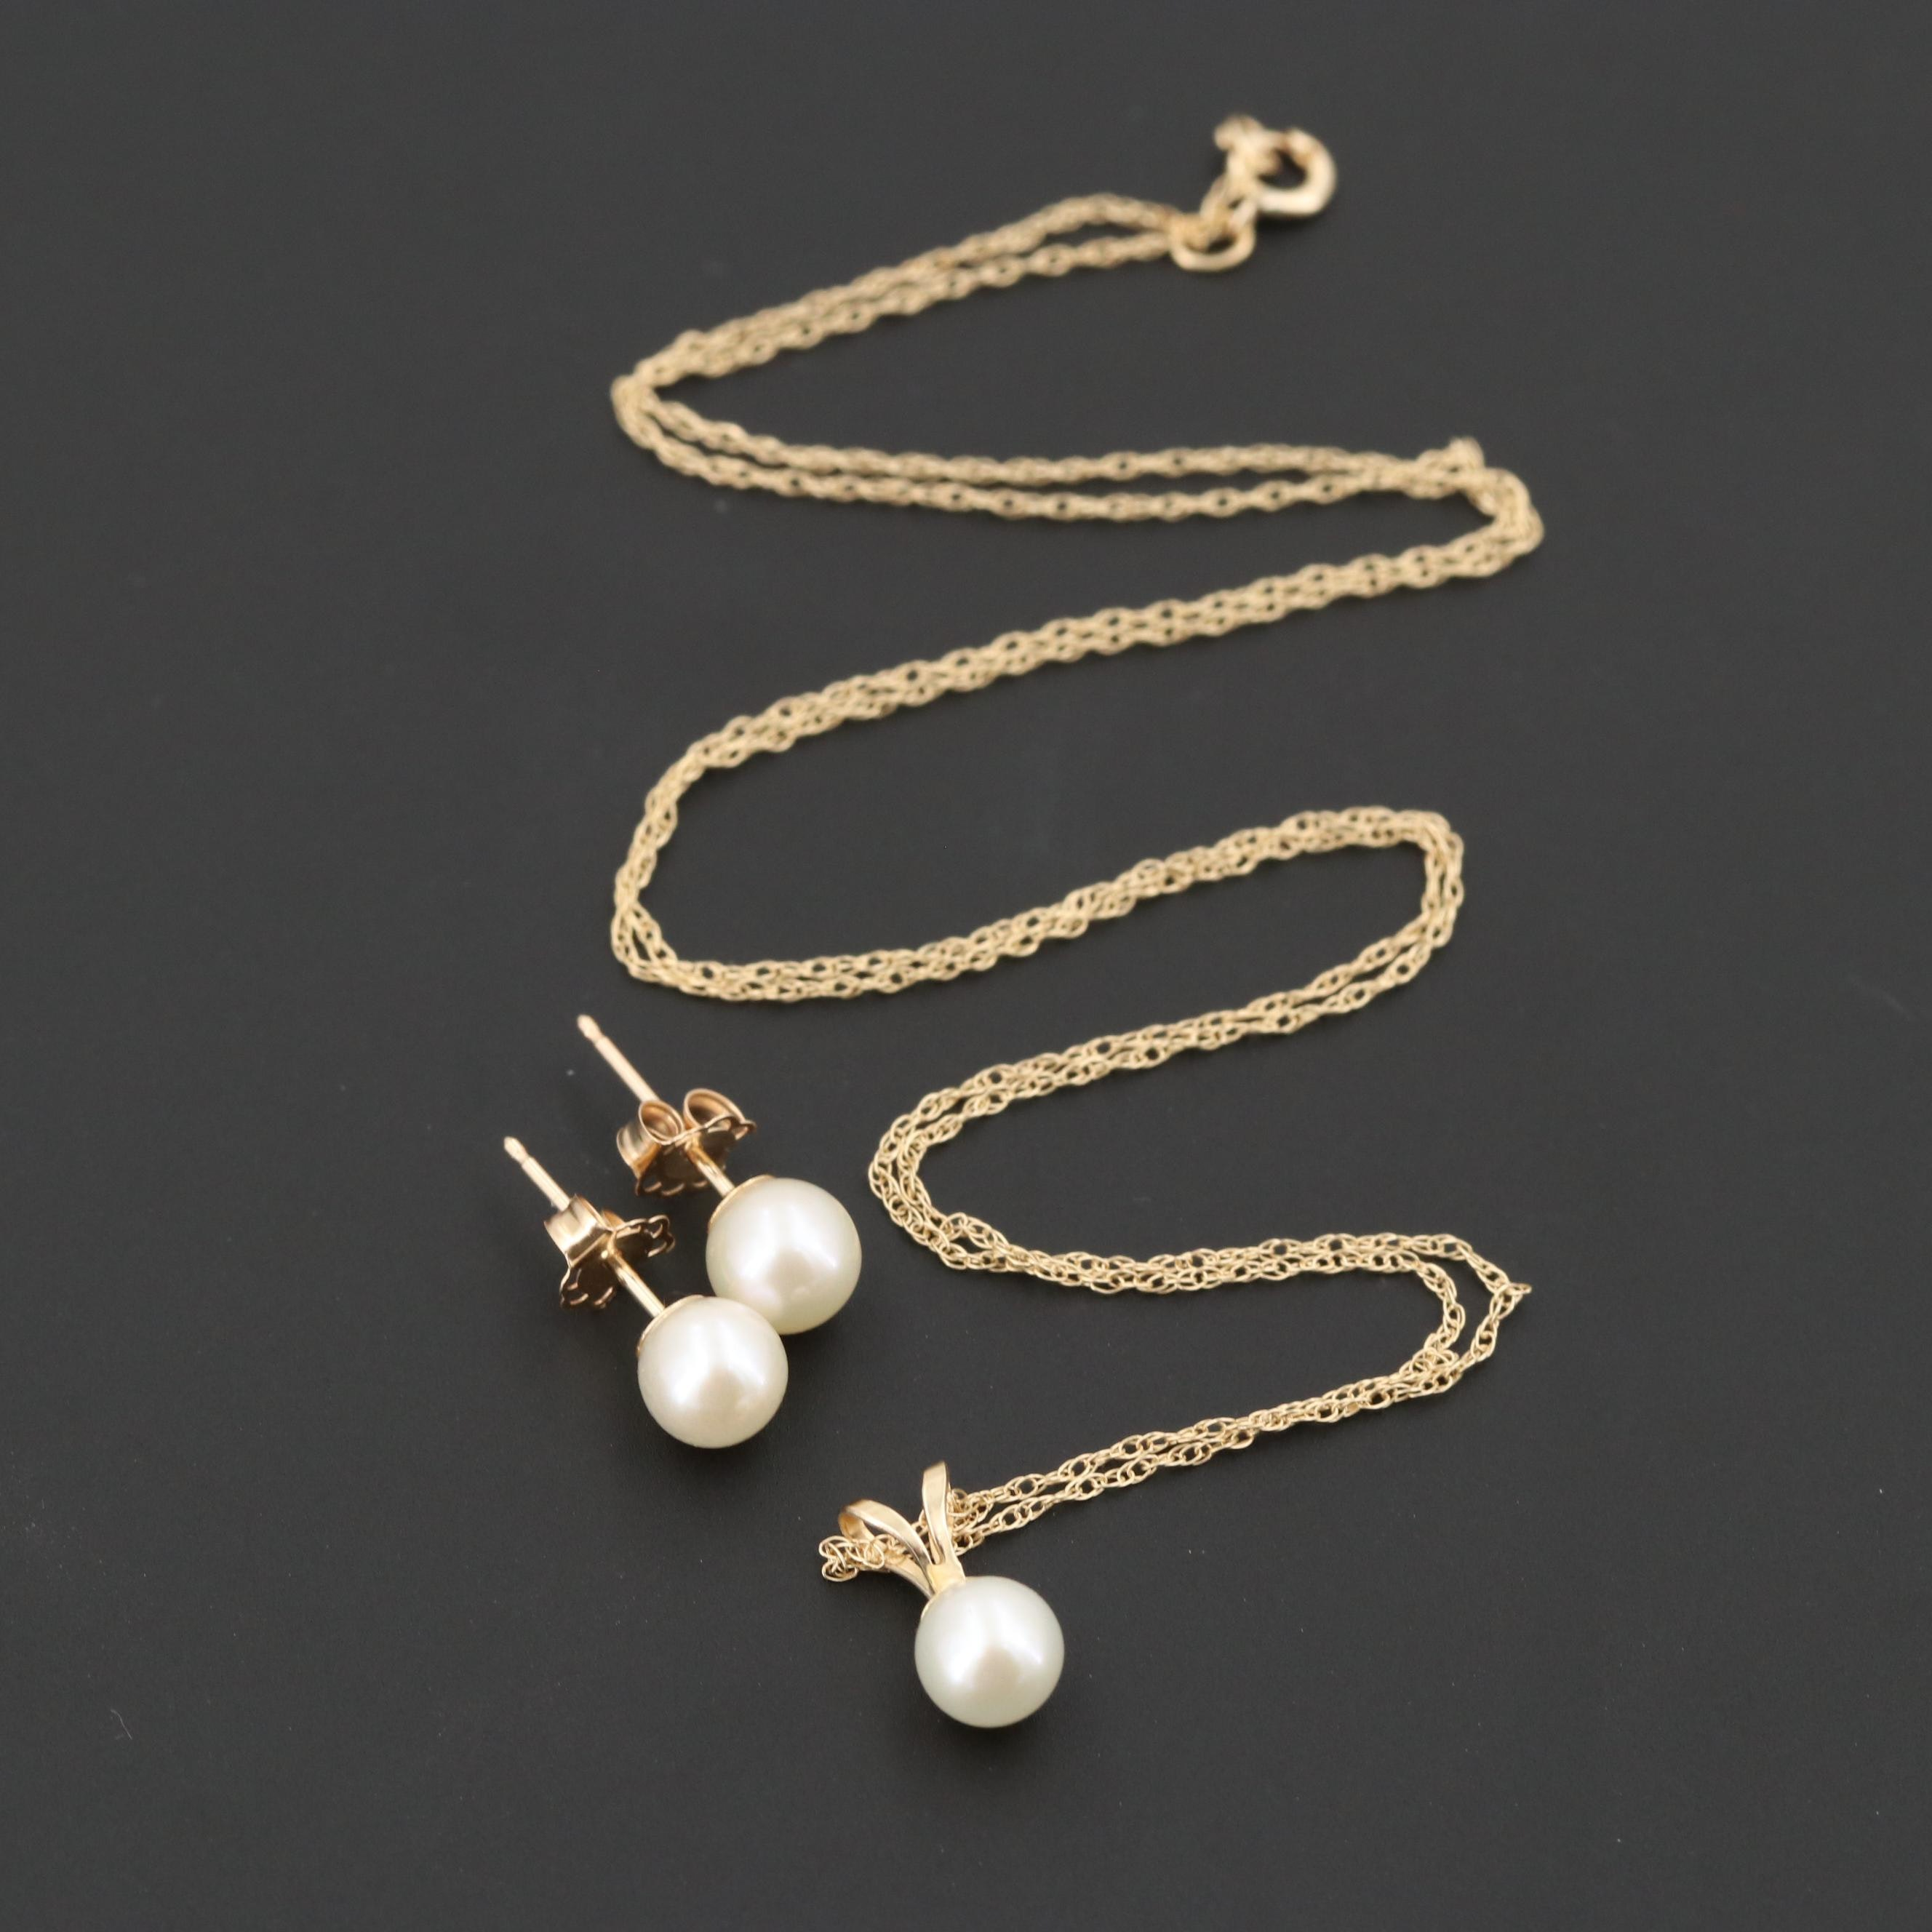 10K Yellow Gold Cultured Pearl Pendant Necklace and Earrings Set